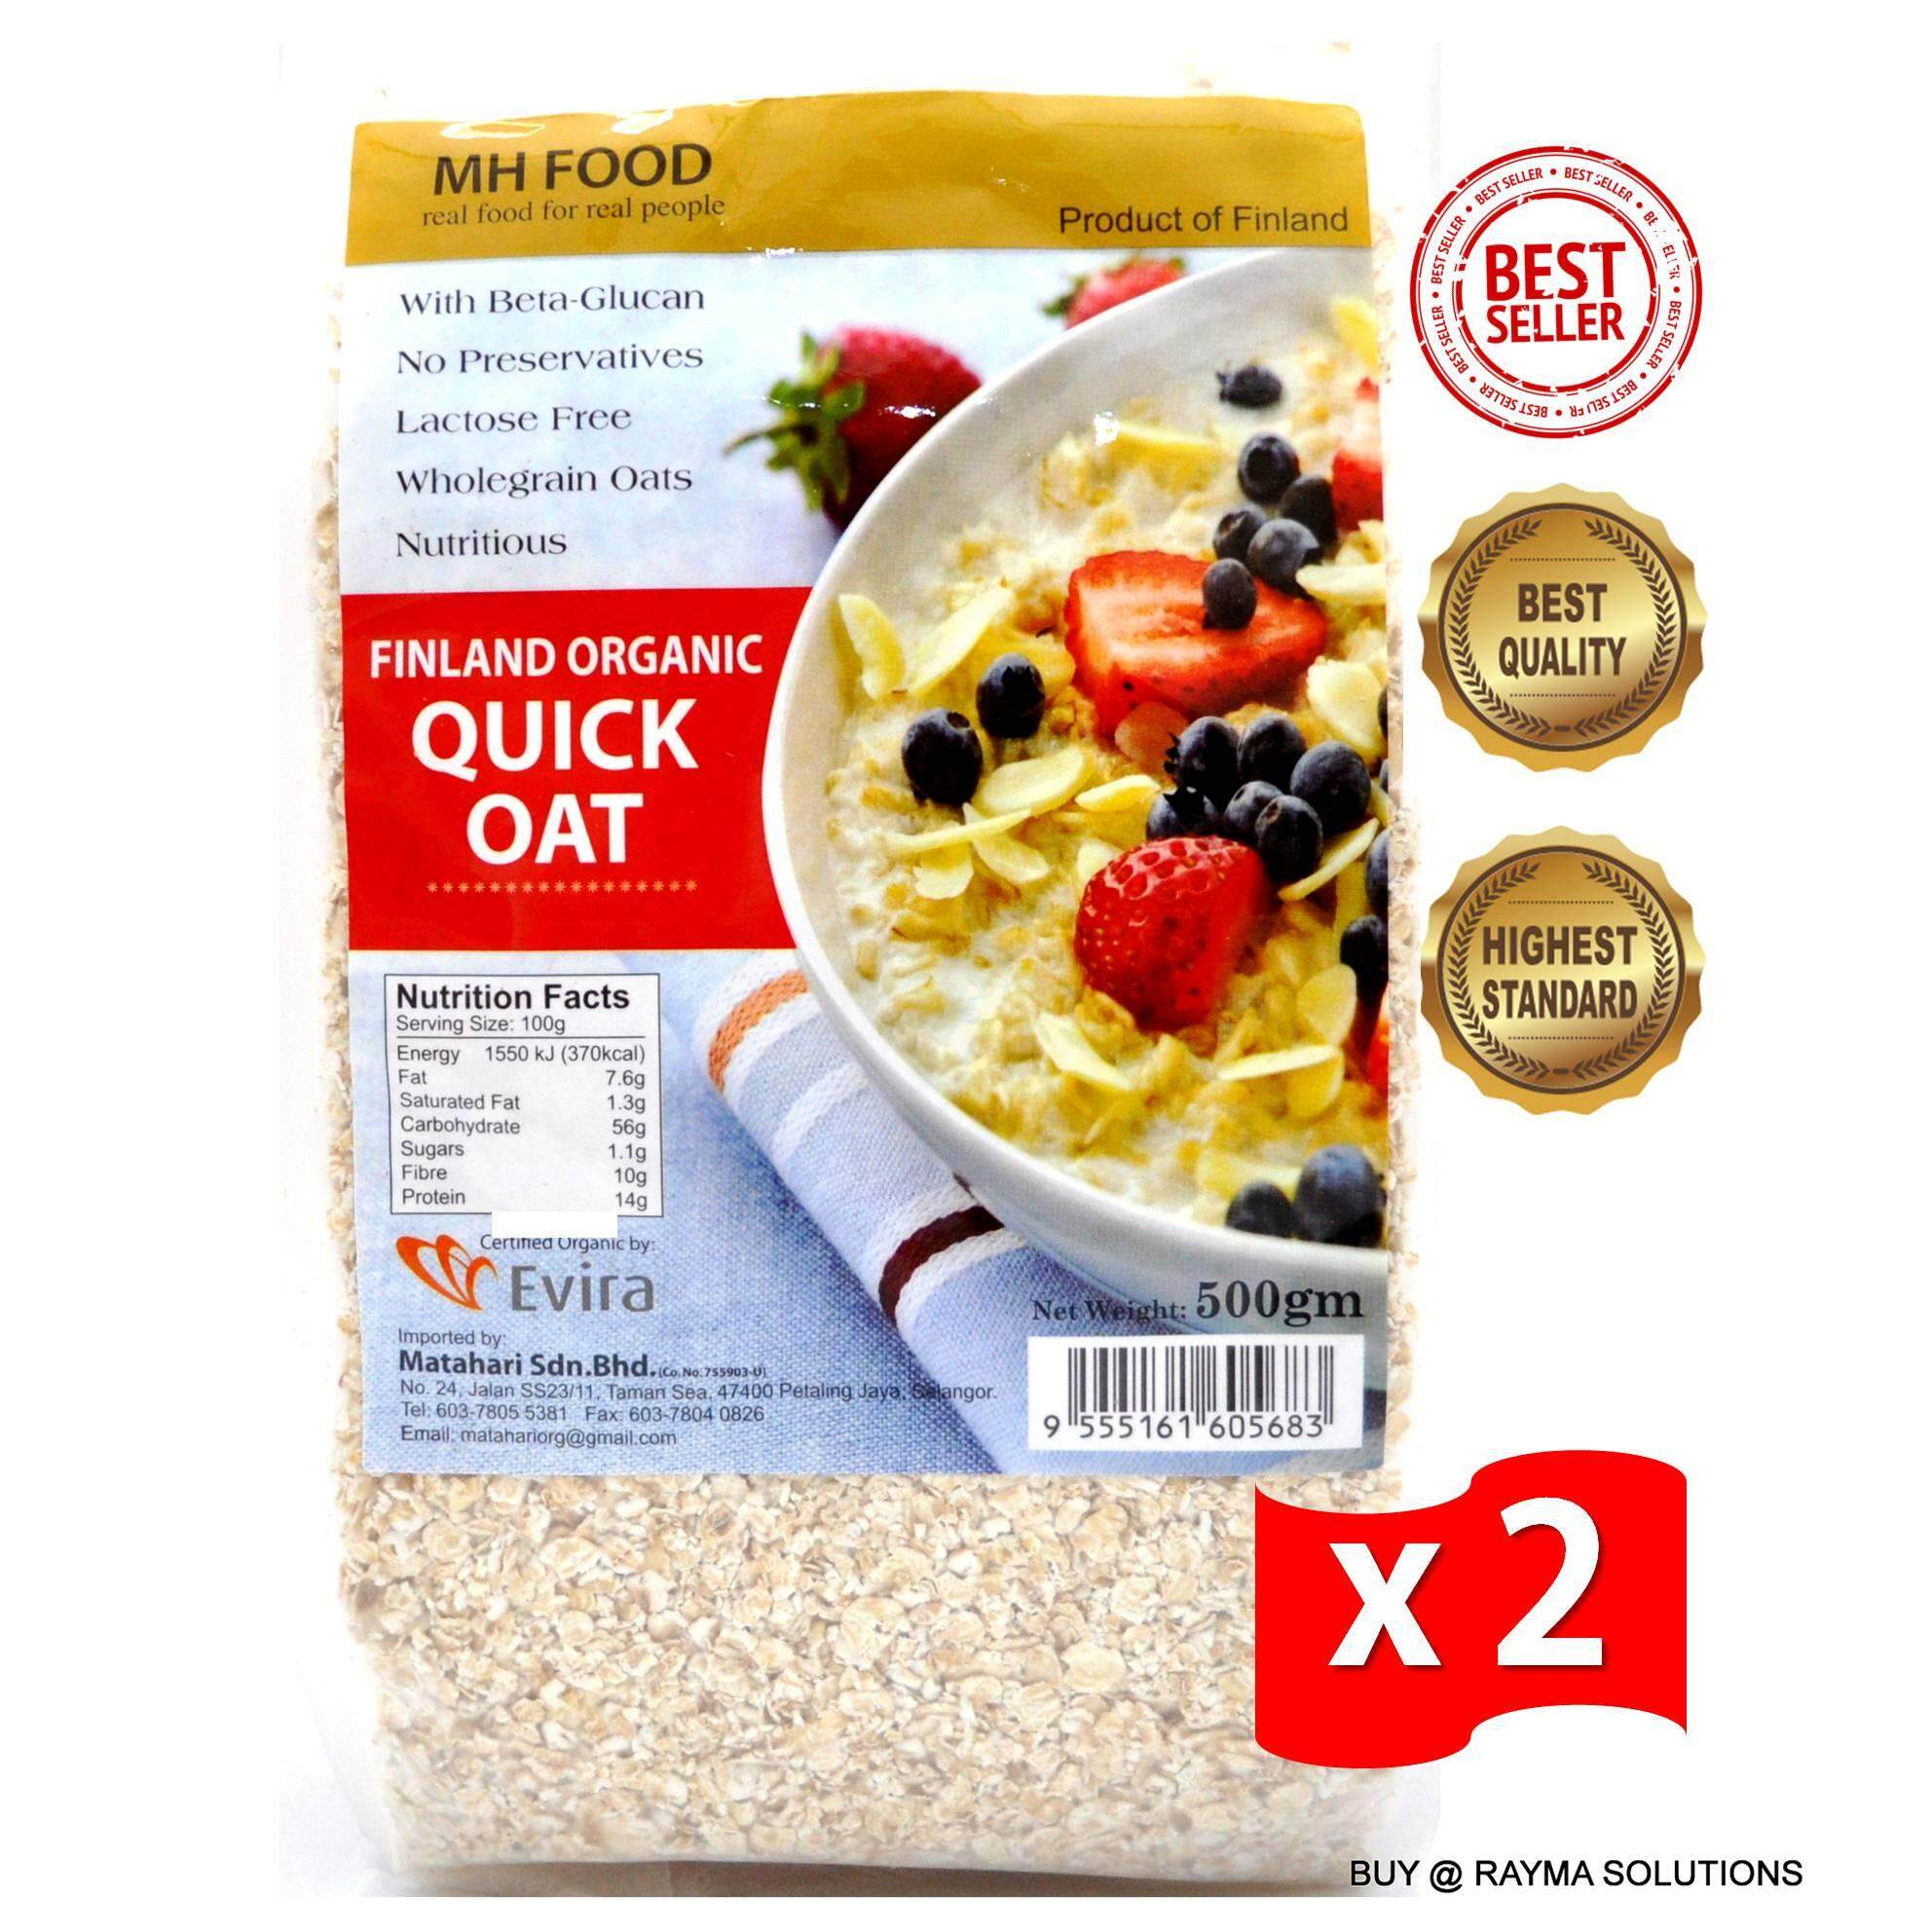 MH FOOD Finland Organic Quick Oats 500g (Twin Pack)